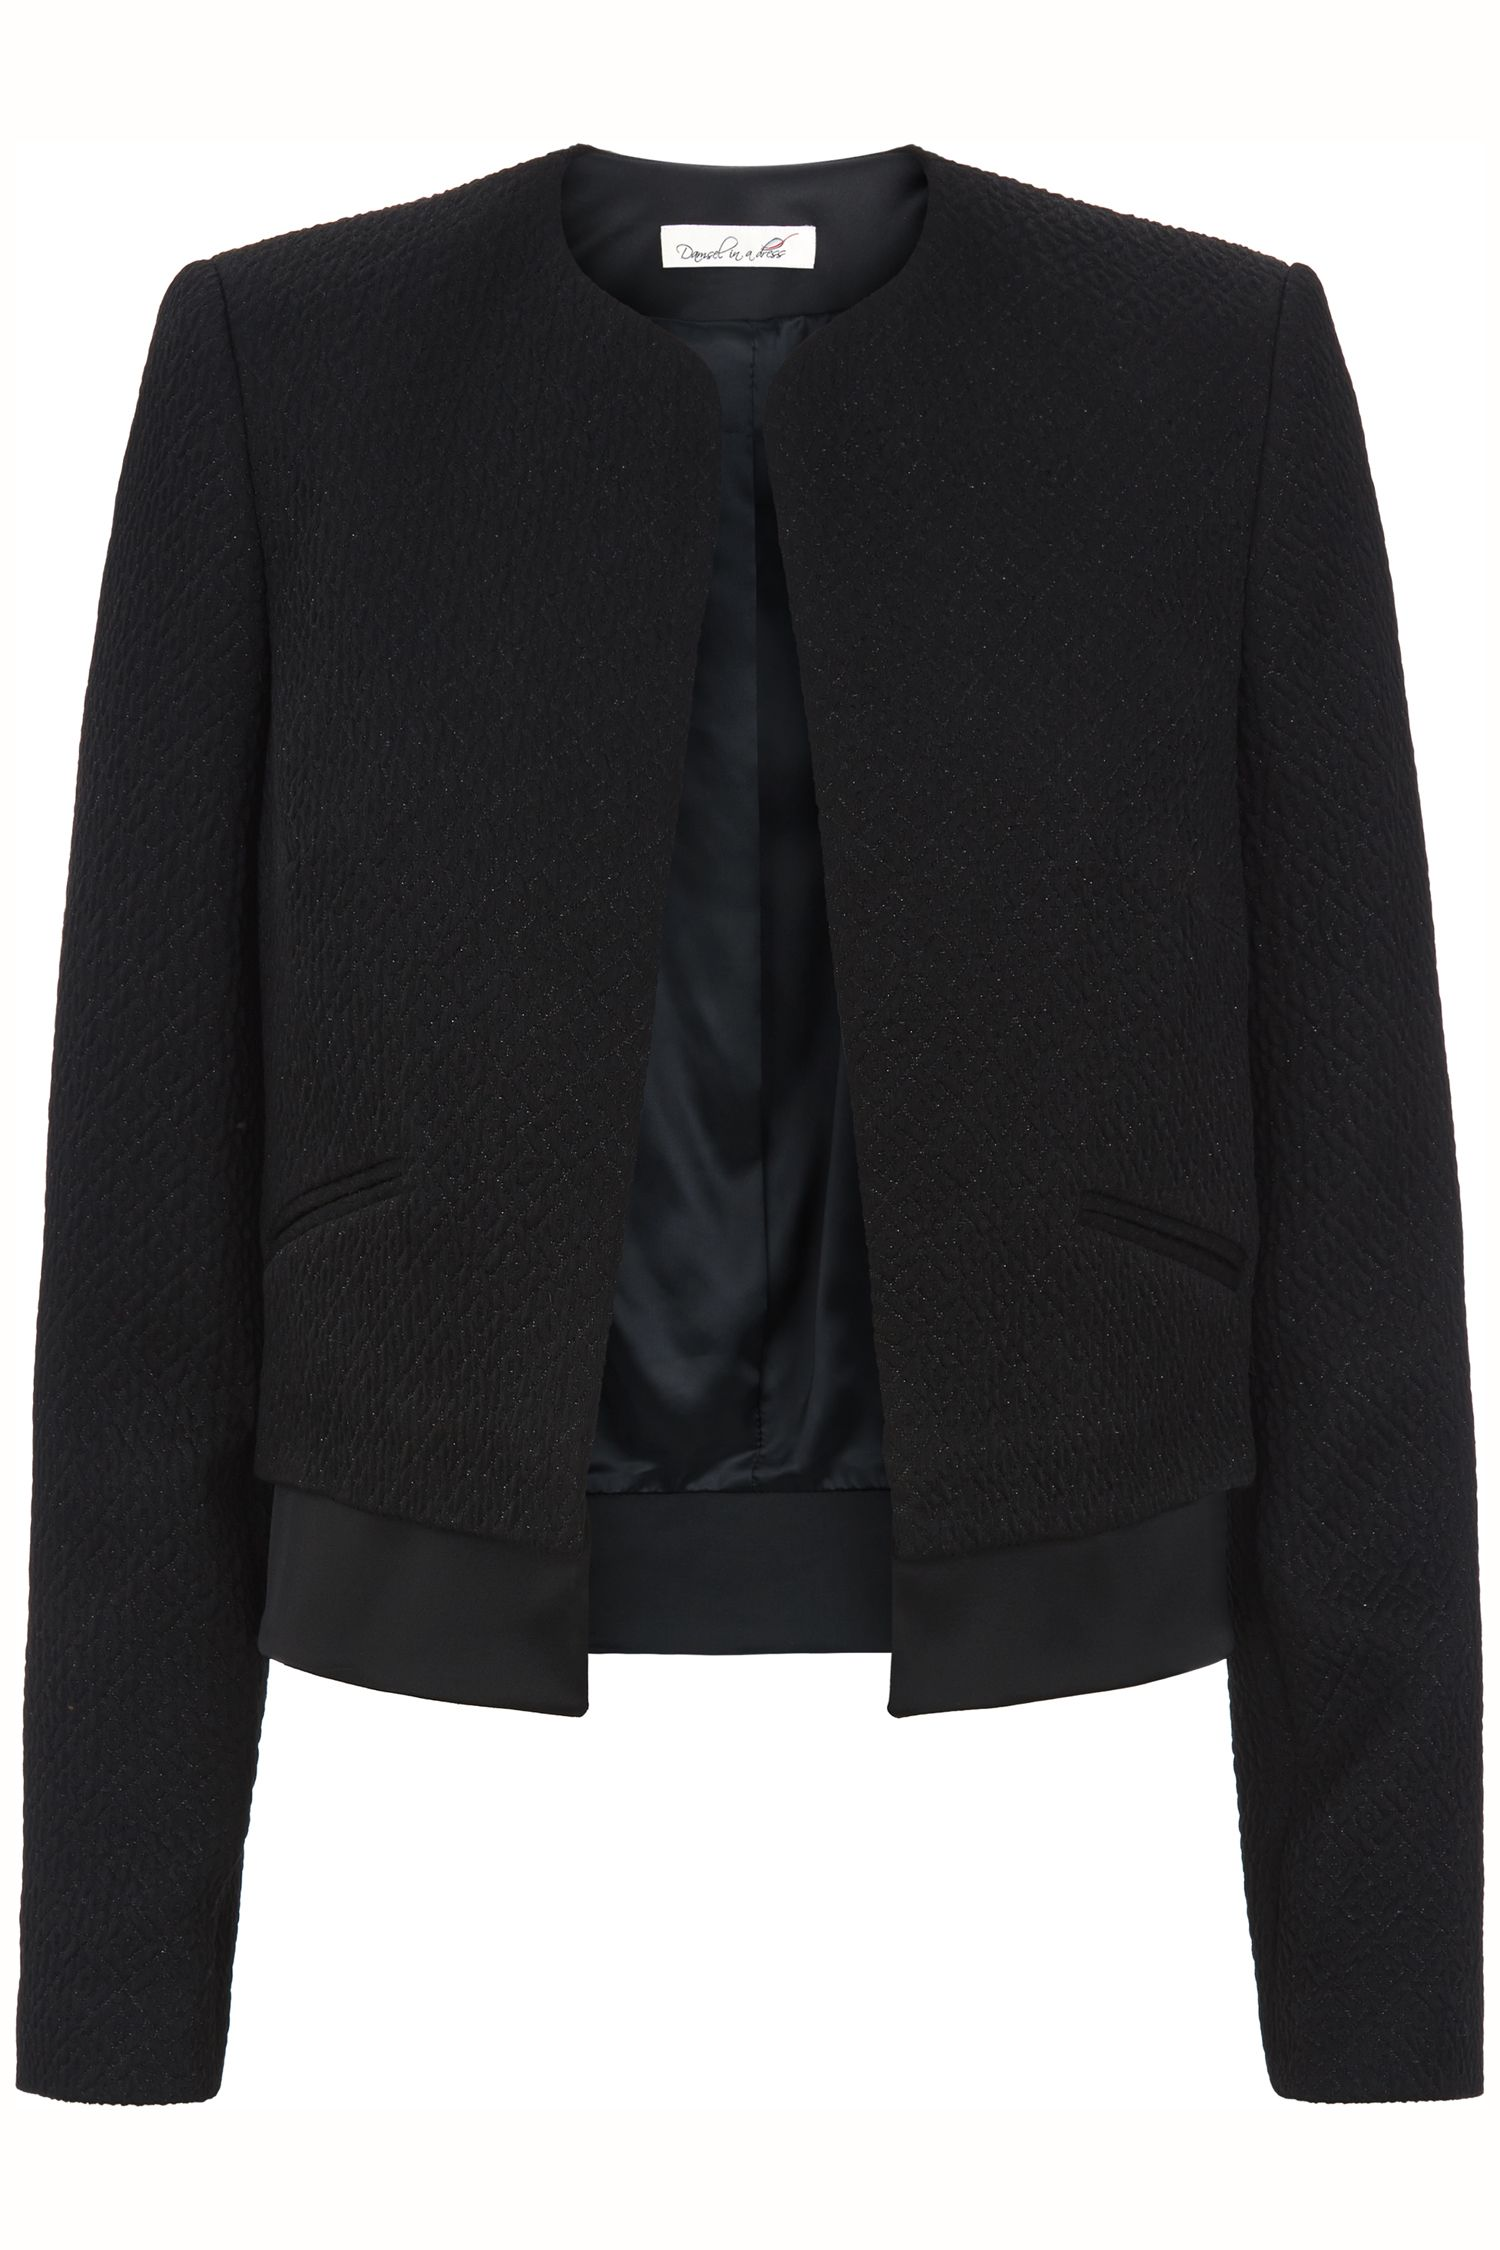 Damsel in a Dress Turner Jacket, Black